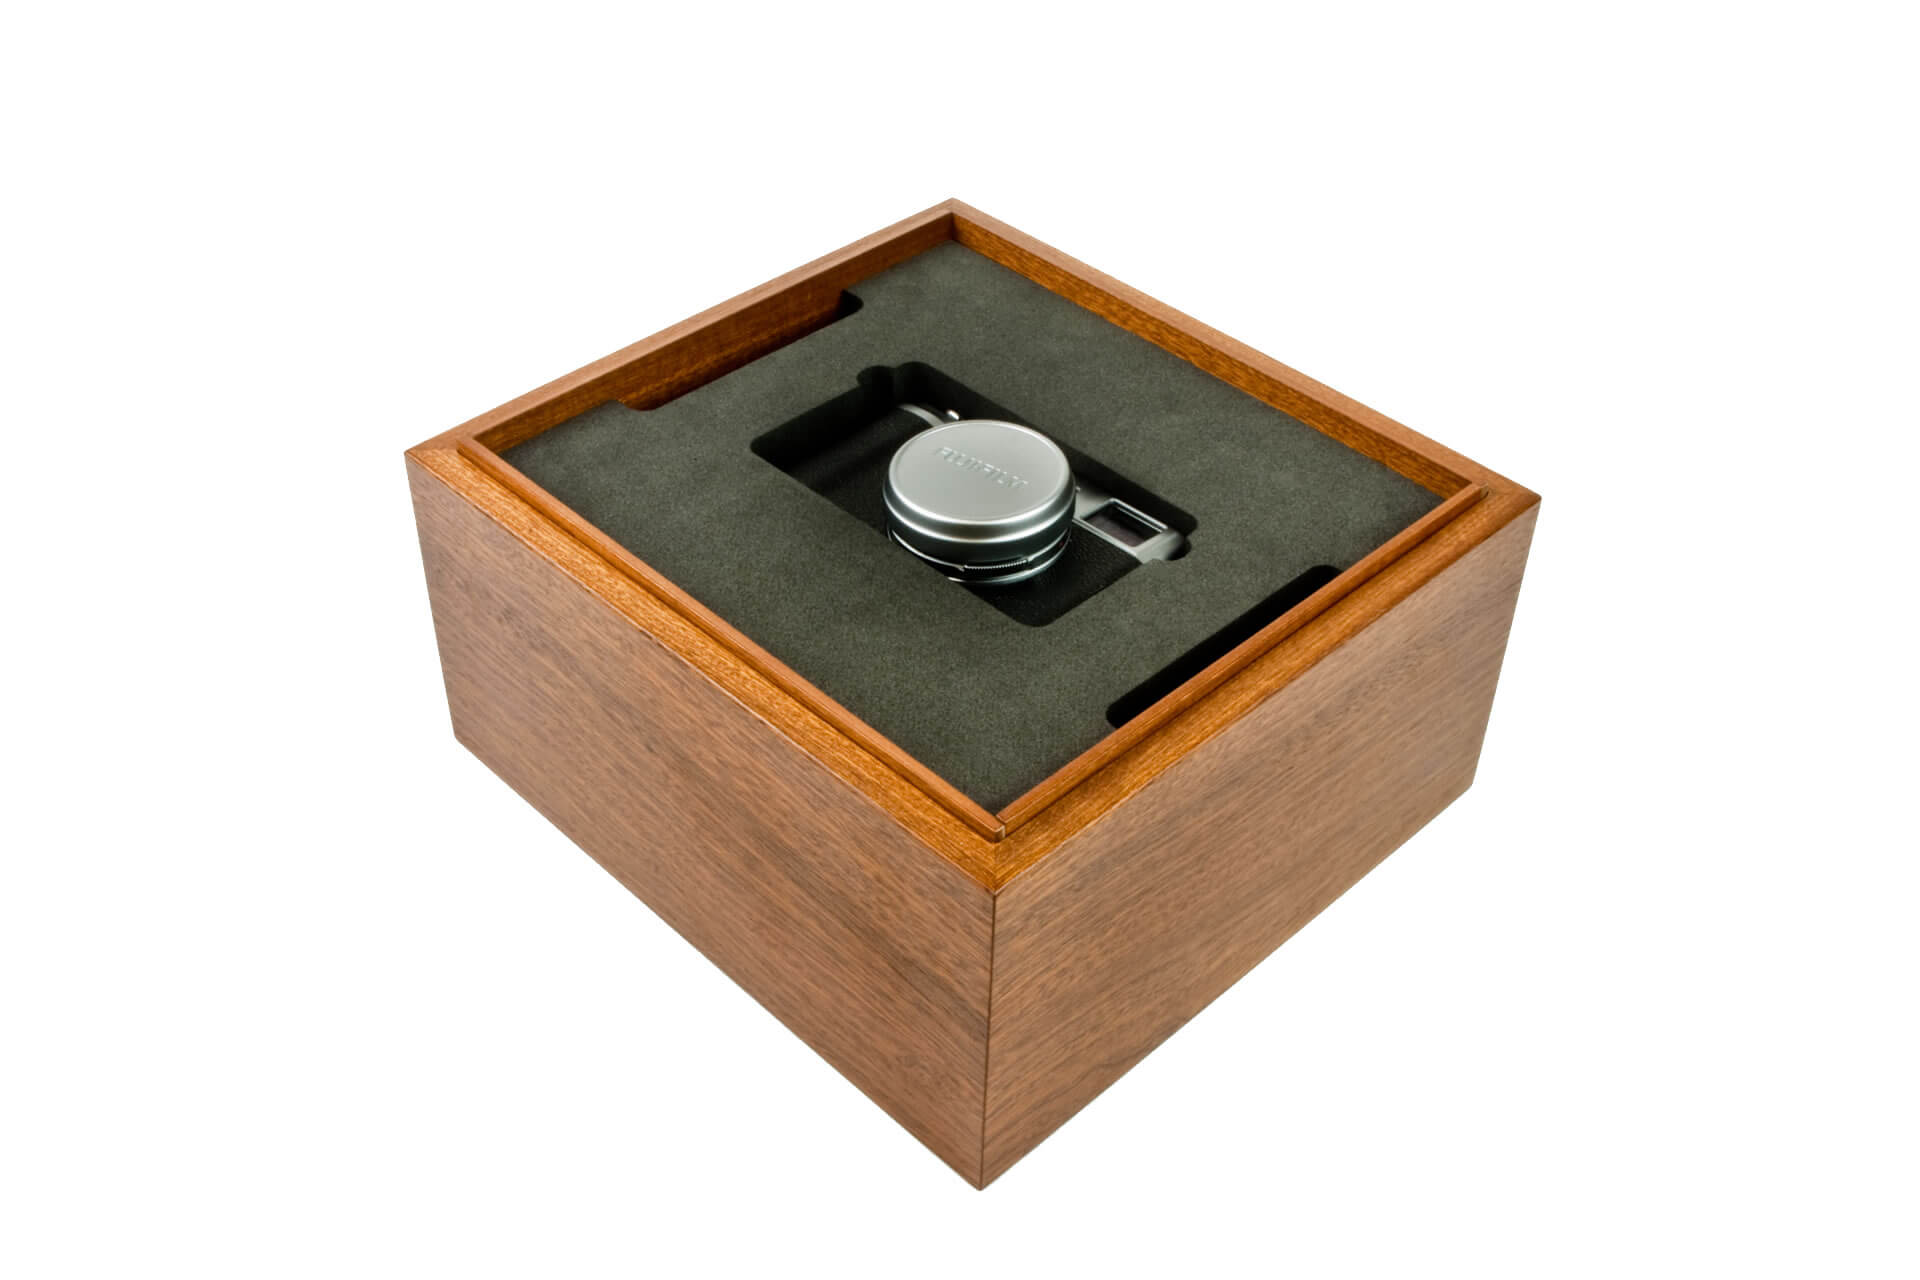 bespoke wooden packaging box lift off lid mahogany clear lacquer internal detail level 4